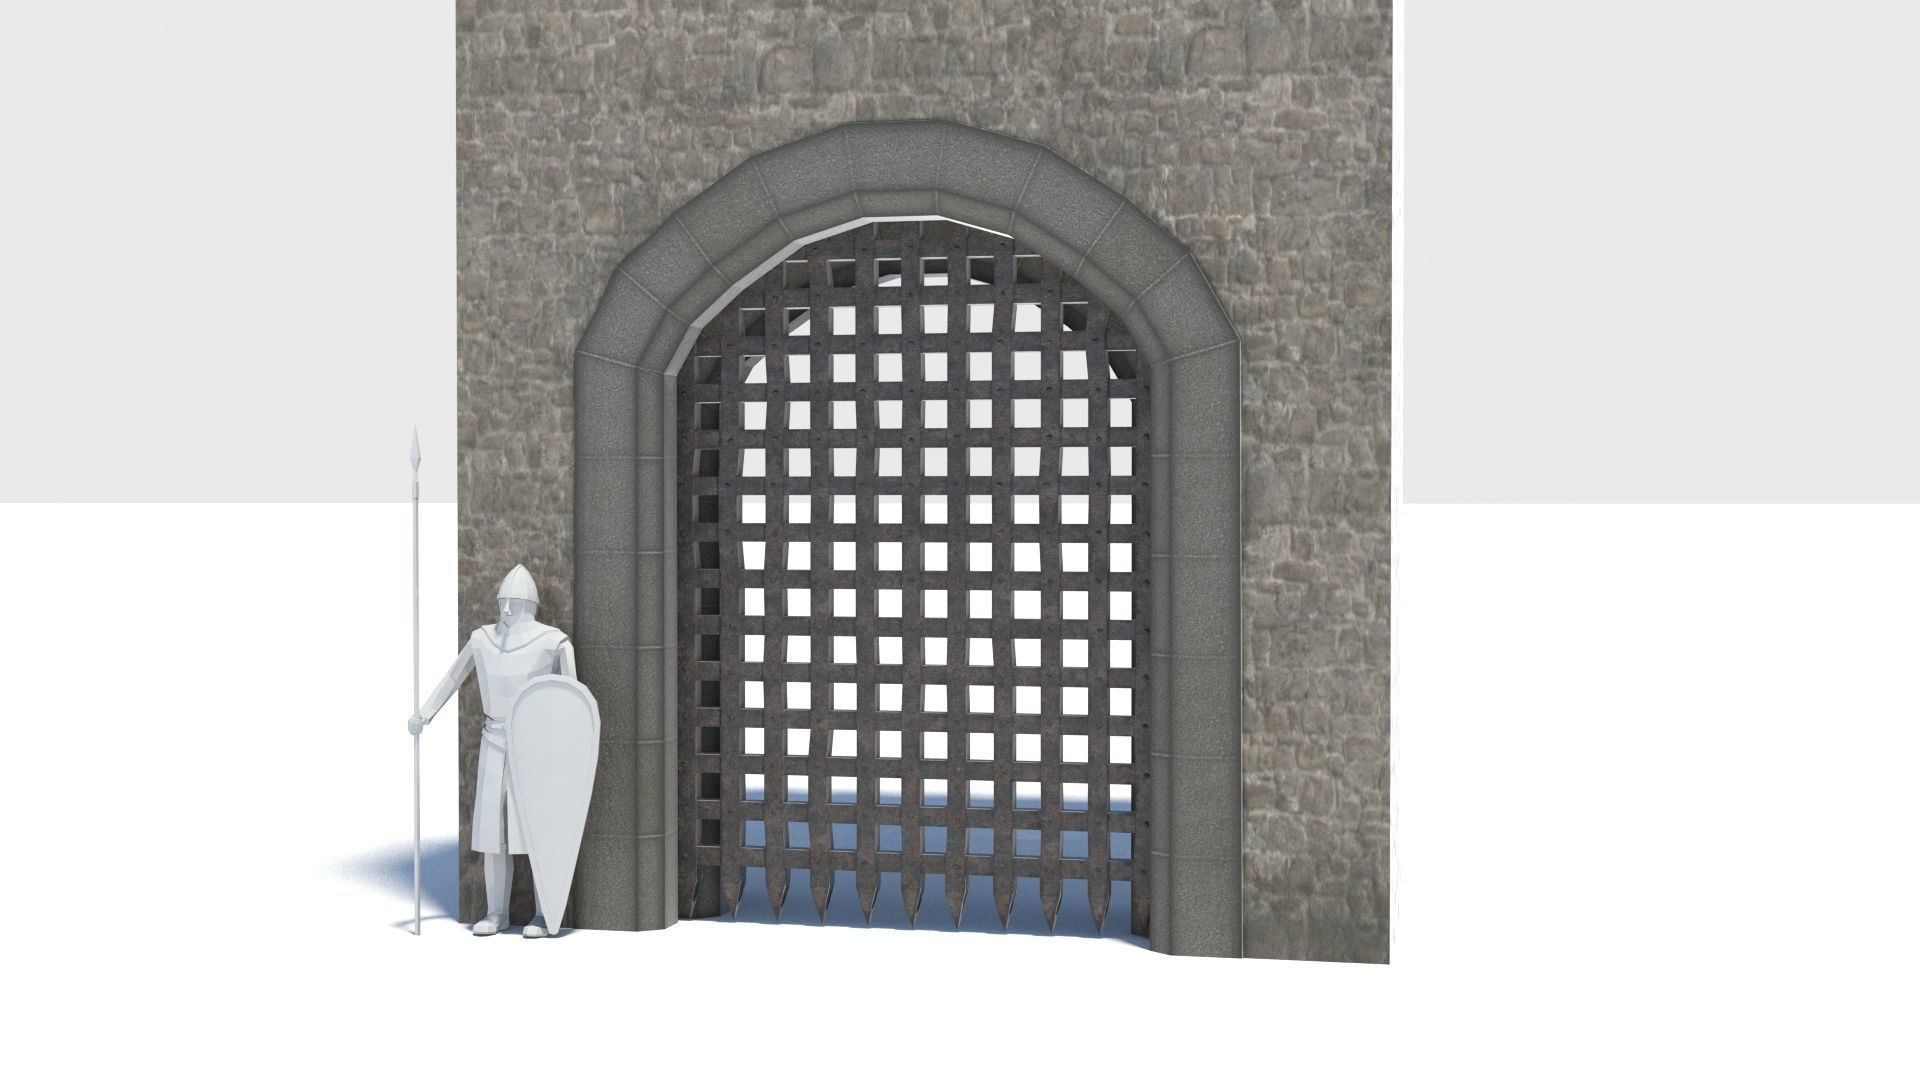 Medieval portcullis gate and winch animated